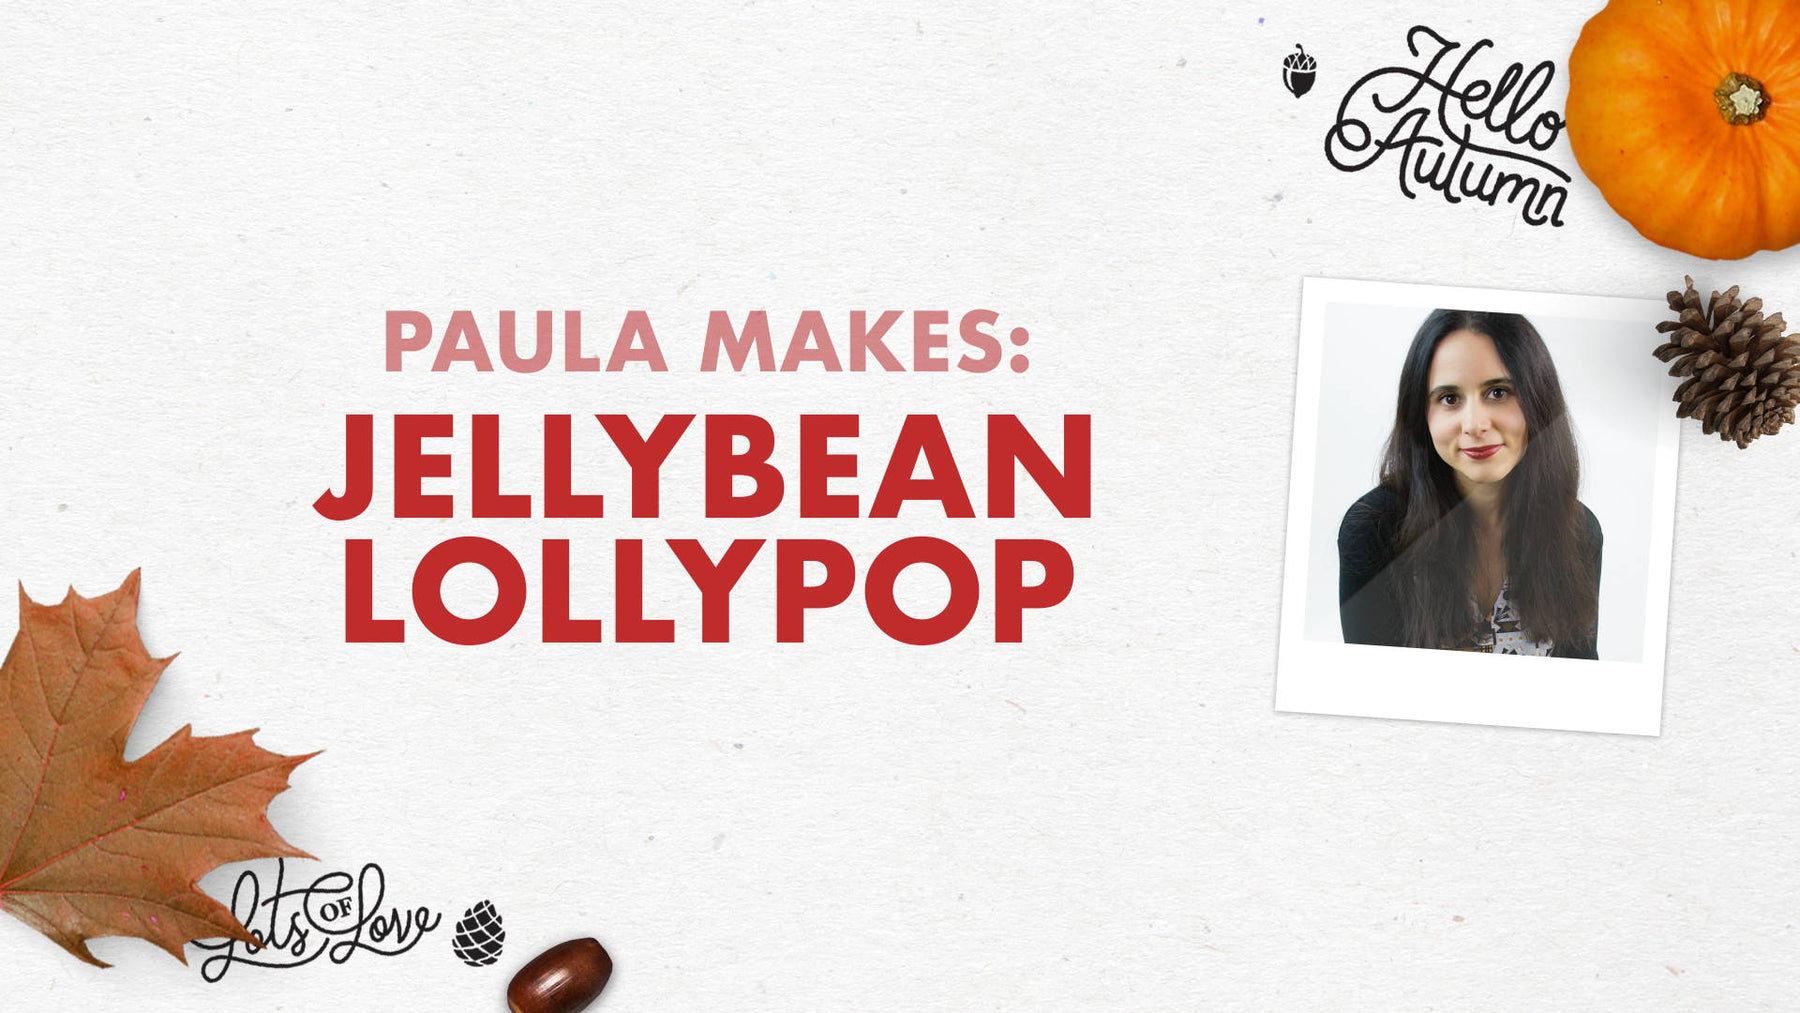 Tonic Craft Kit 12 - Hello Autumn Shaker Jellybean lollypop - Paula Pascual